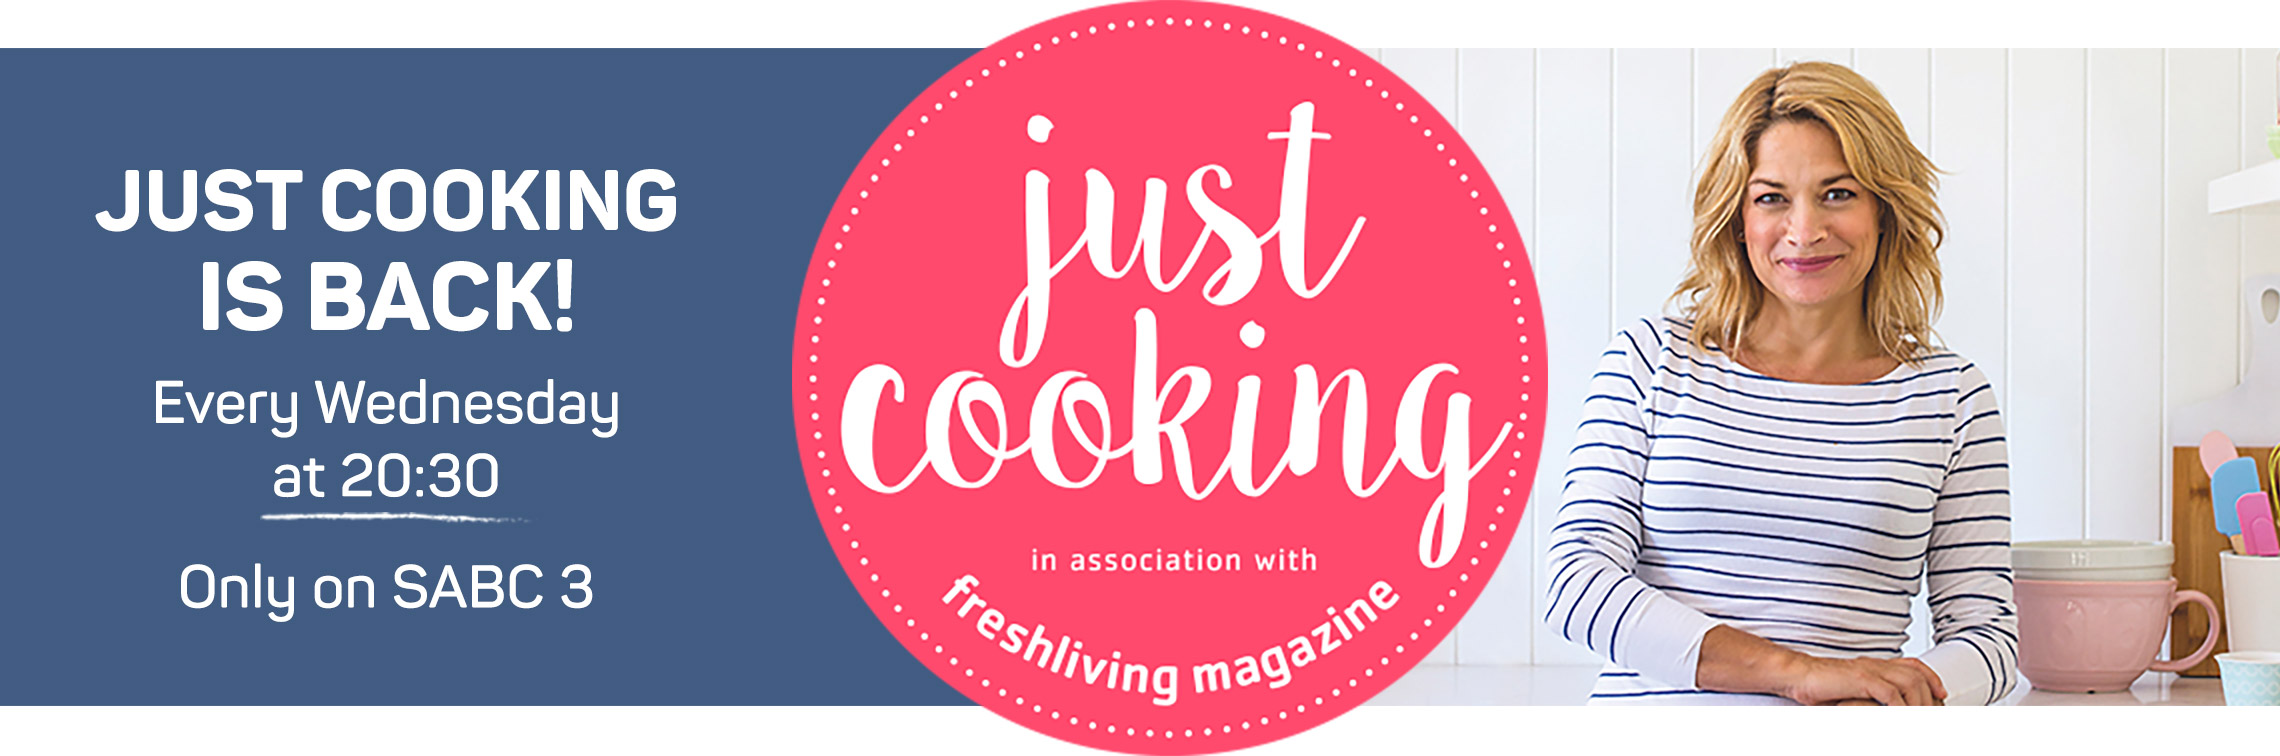 Just Cooking is back! Every Wednesday at 20:30  Only on SABC 3